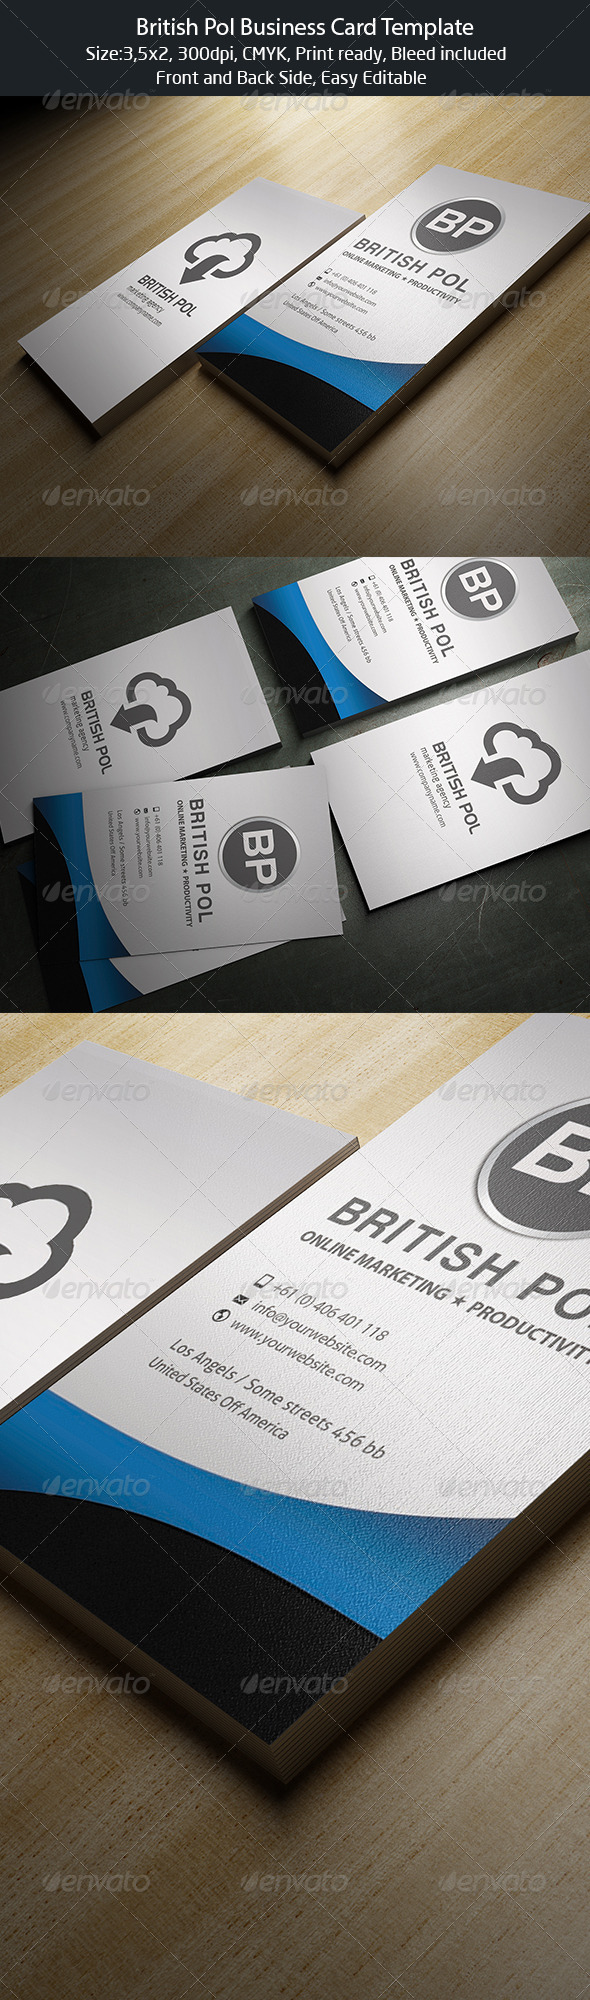 GraphicRiver British Pol Business Card 4649869